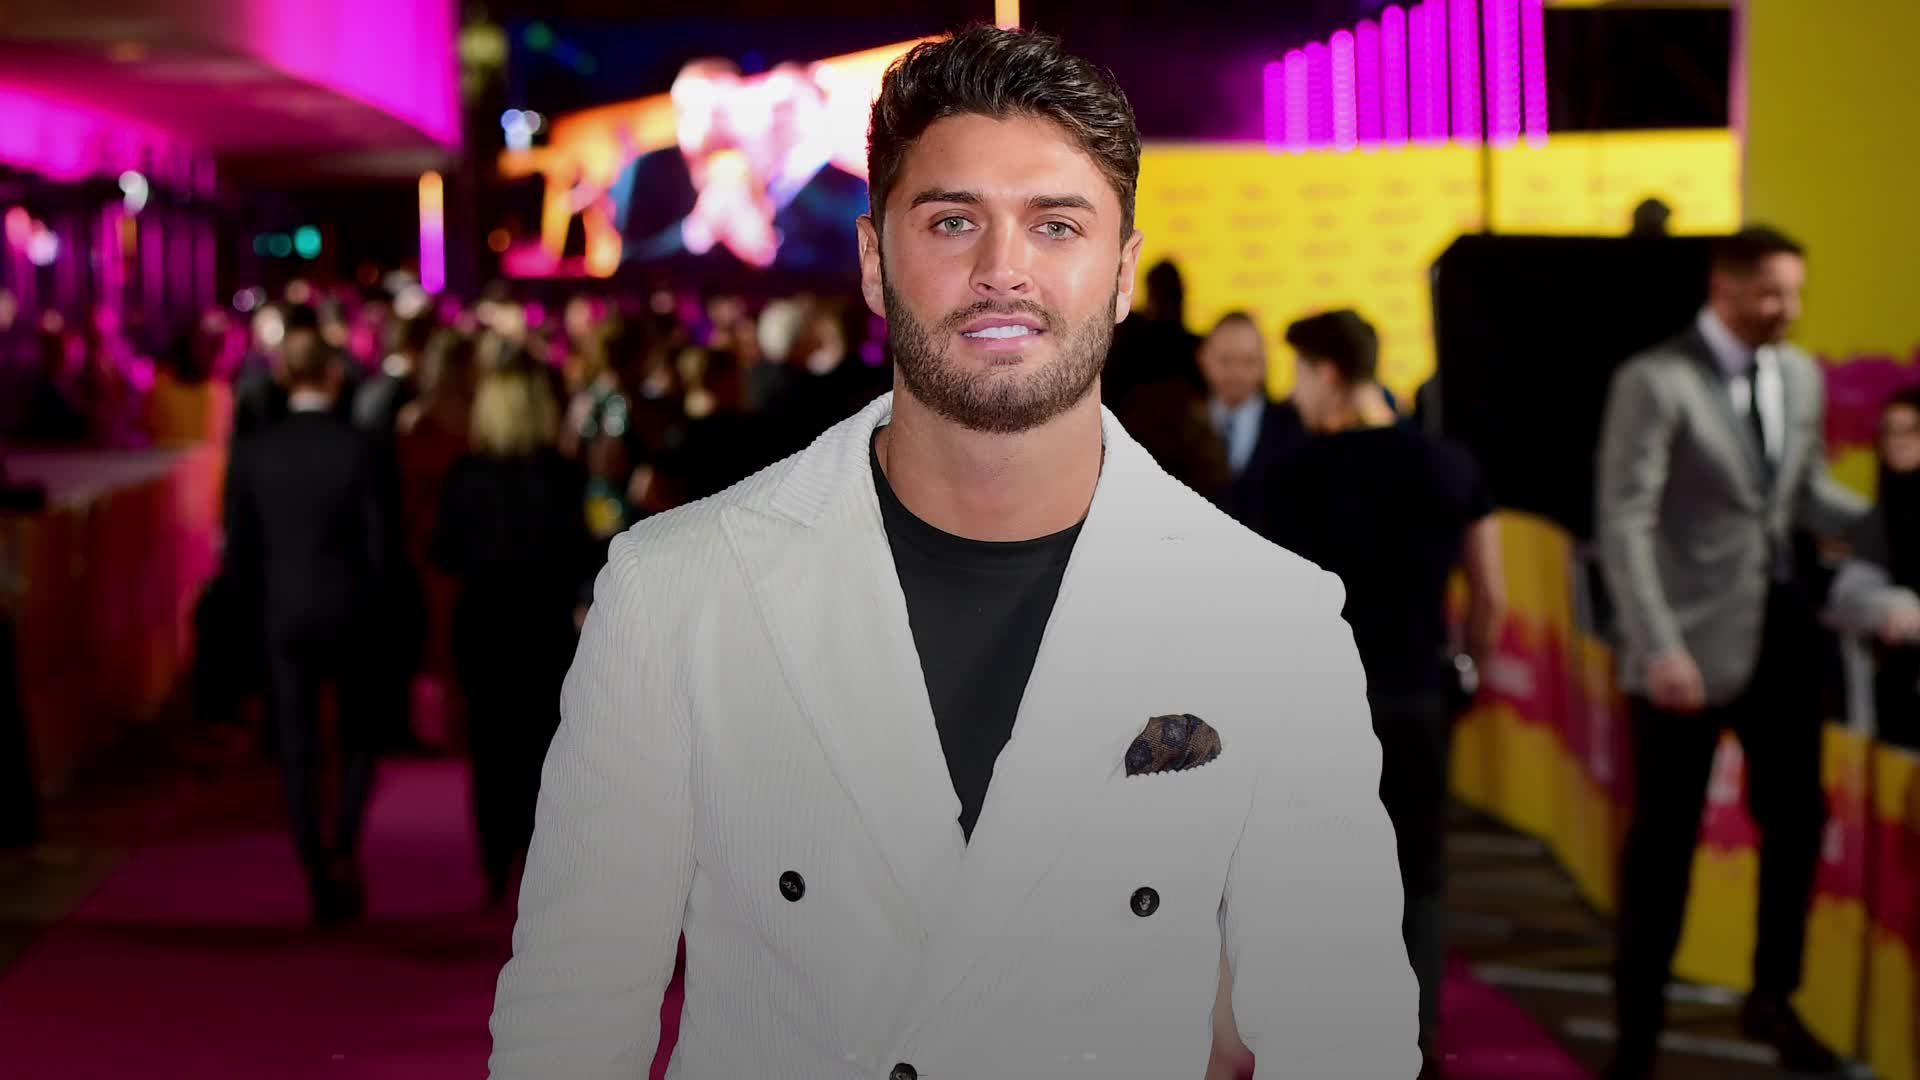 Mike Thalassitis Dead: Love Island Star's Death Not Being Treated As Suspicious, Police Confirm